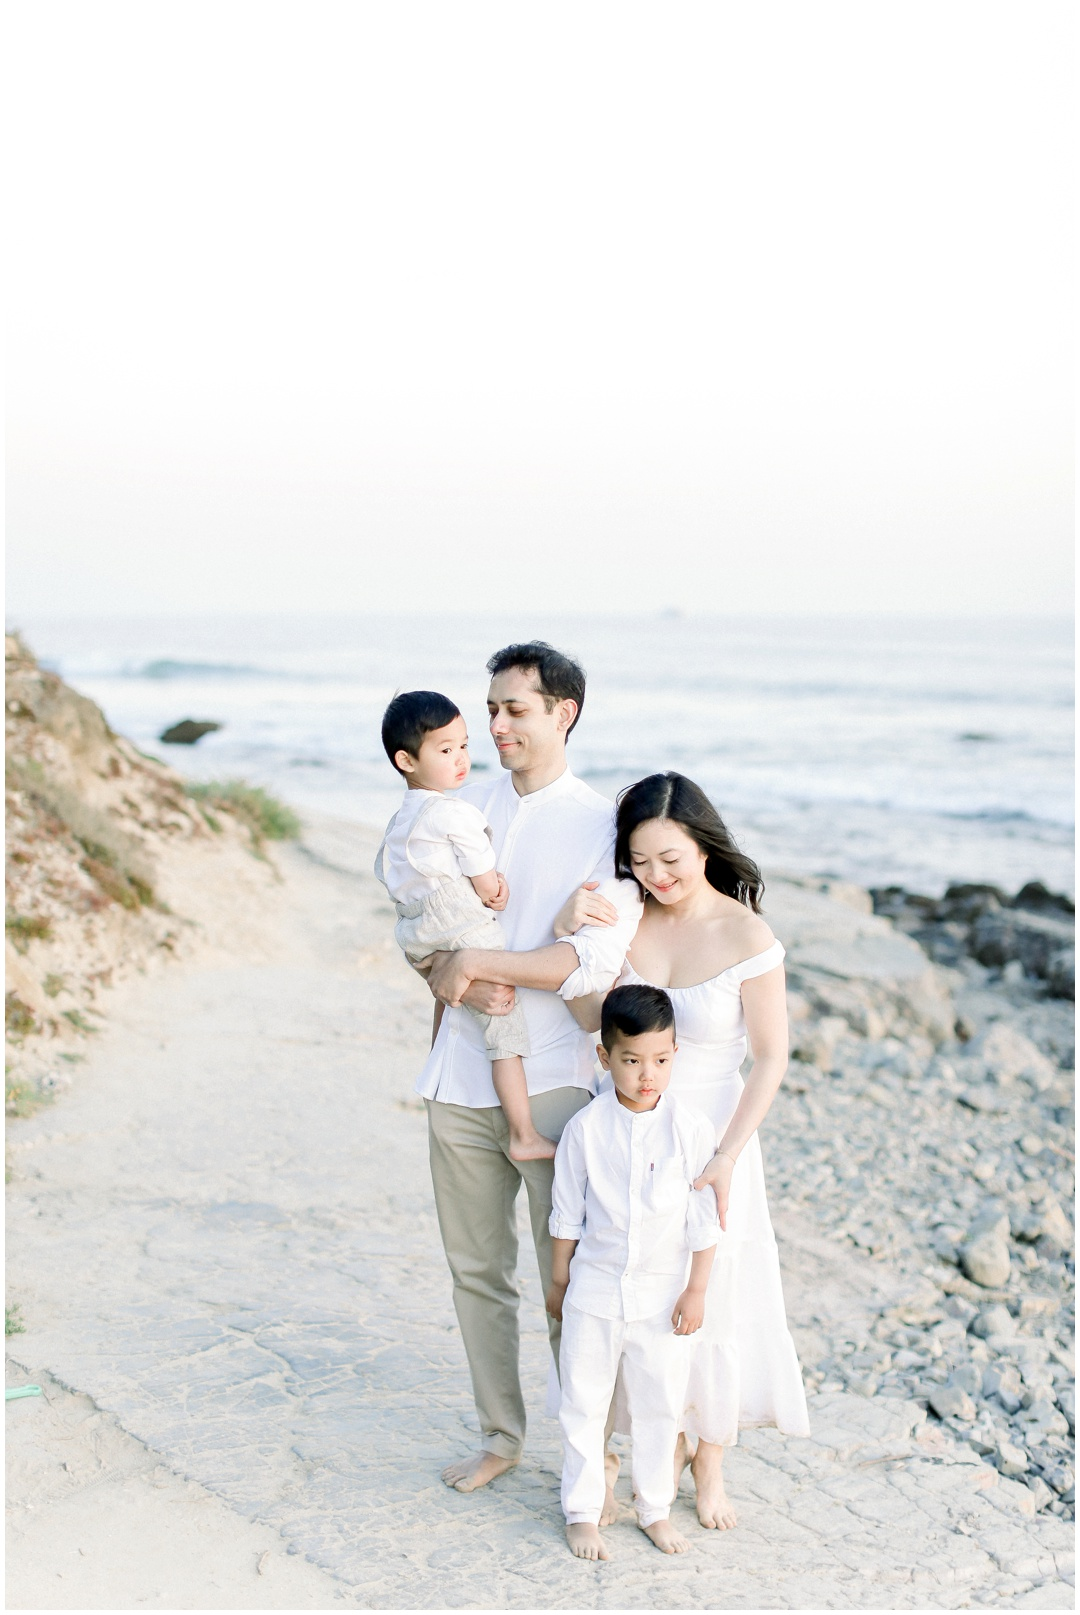 Newport_Beach_Newborn_Light_Airy_Natural_Photographer_Newport_Beach_Photographer_Orange_County_Family_Photographer_Cori_Kleckner_Photography_Huntington_Beach_Photographer_Family_OC_Newborn_Christine_Cho_Family_session__3386.jpg